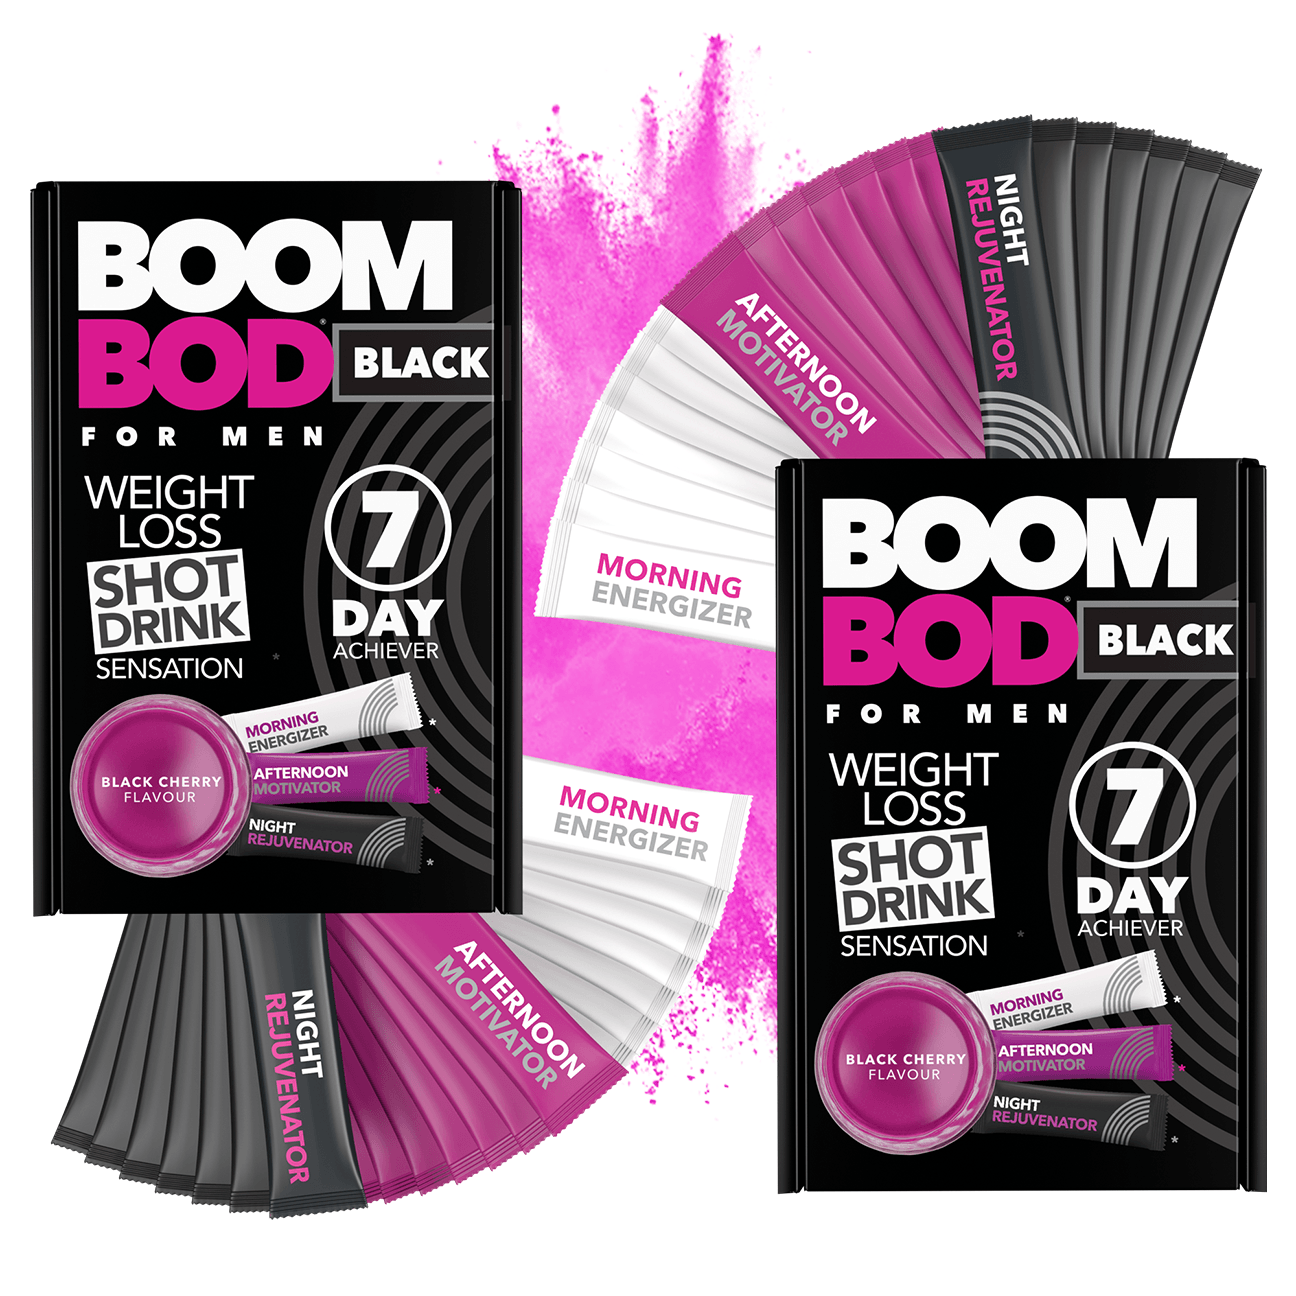 Boombod 14 Day Achiever Men's | Black Cherry | Weight Loss Shot Drink